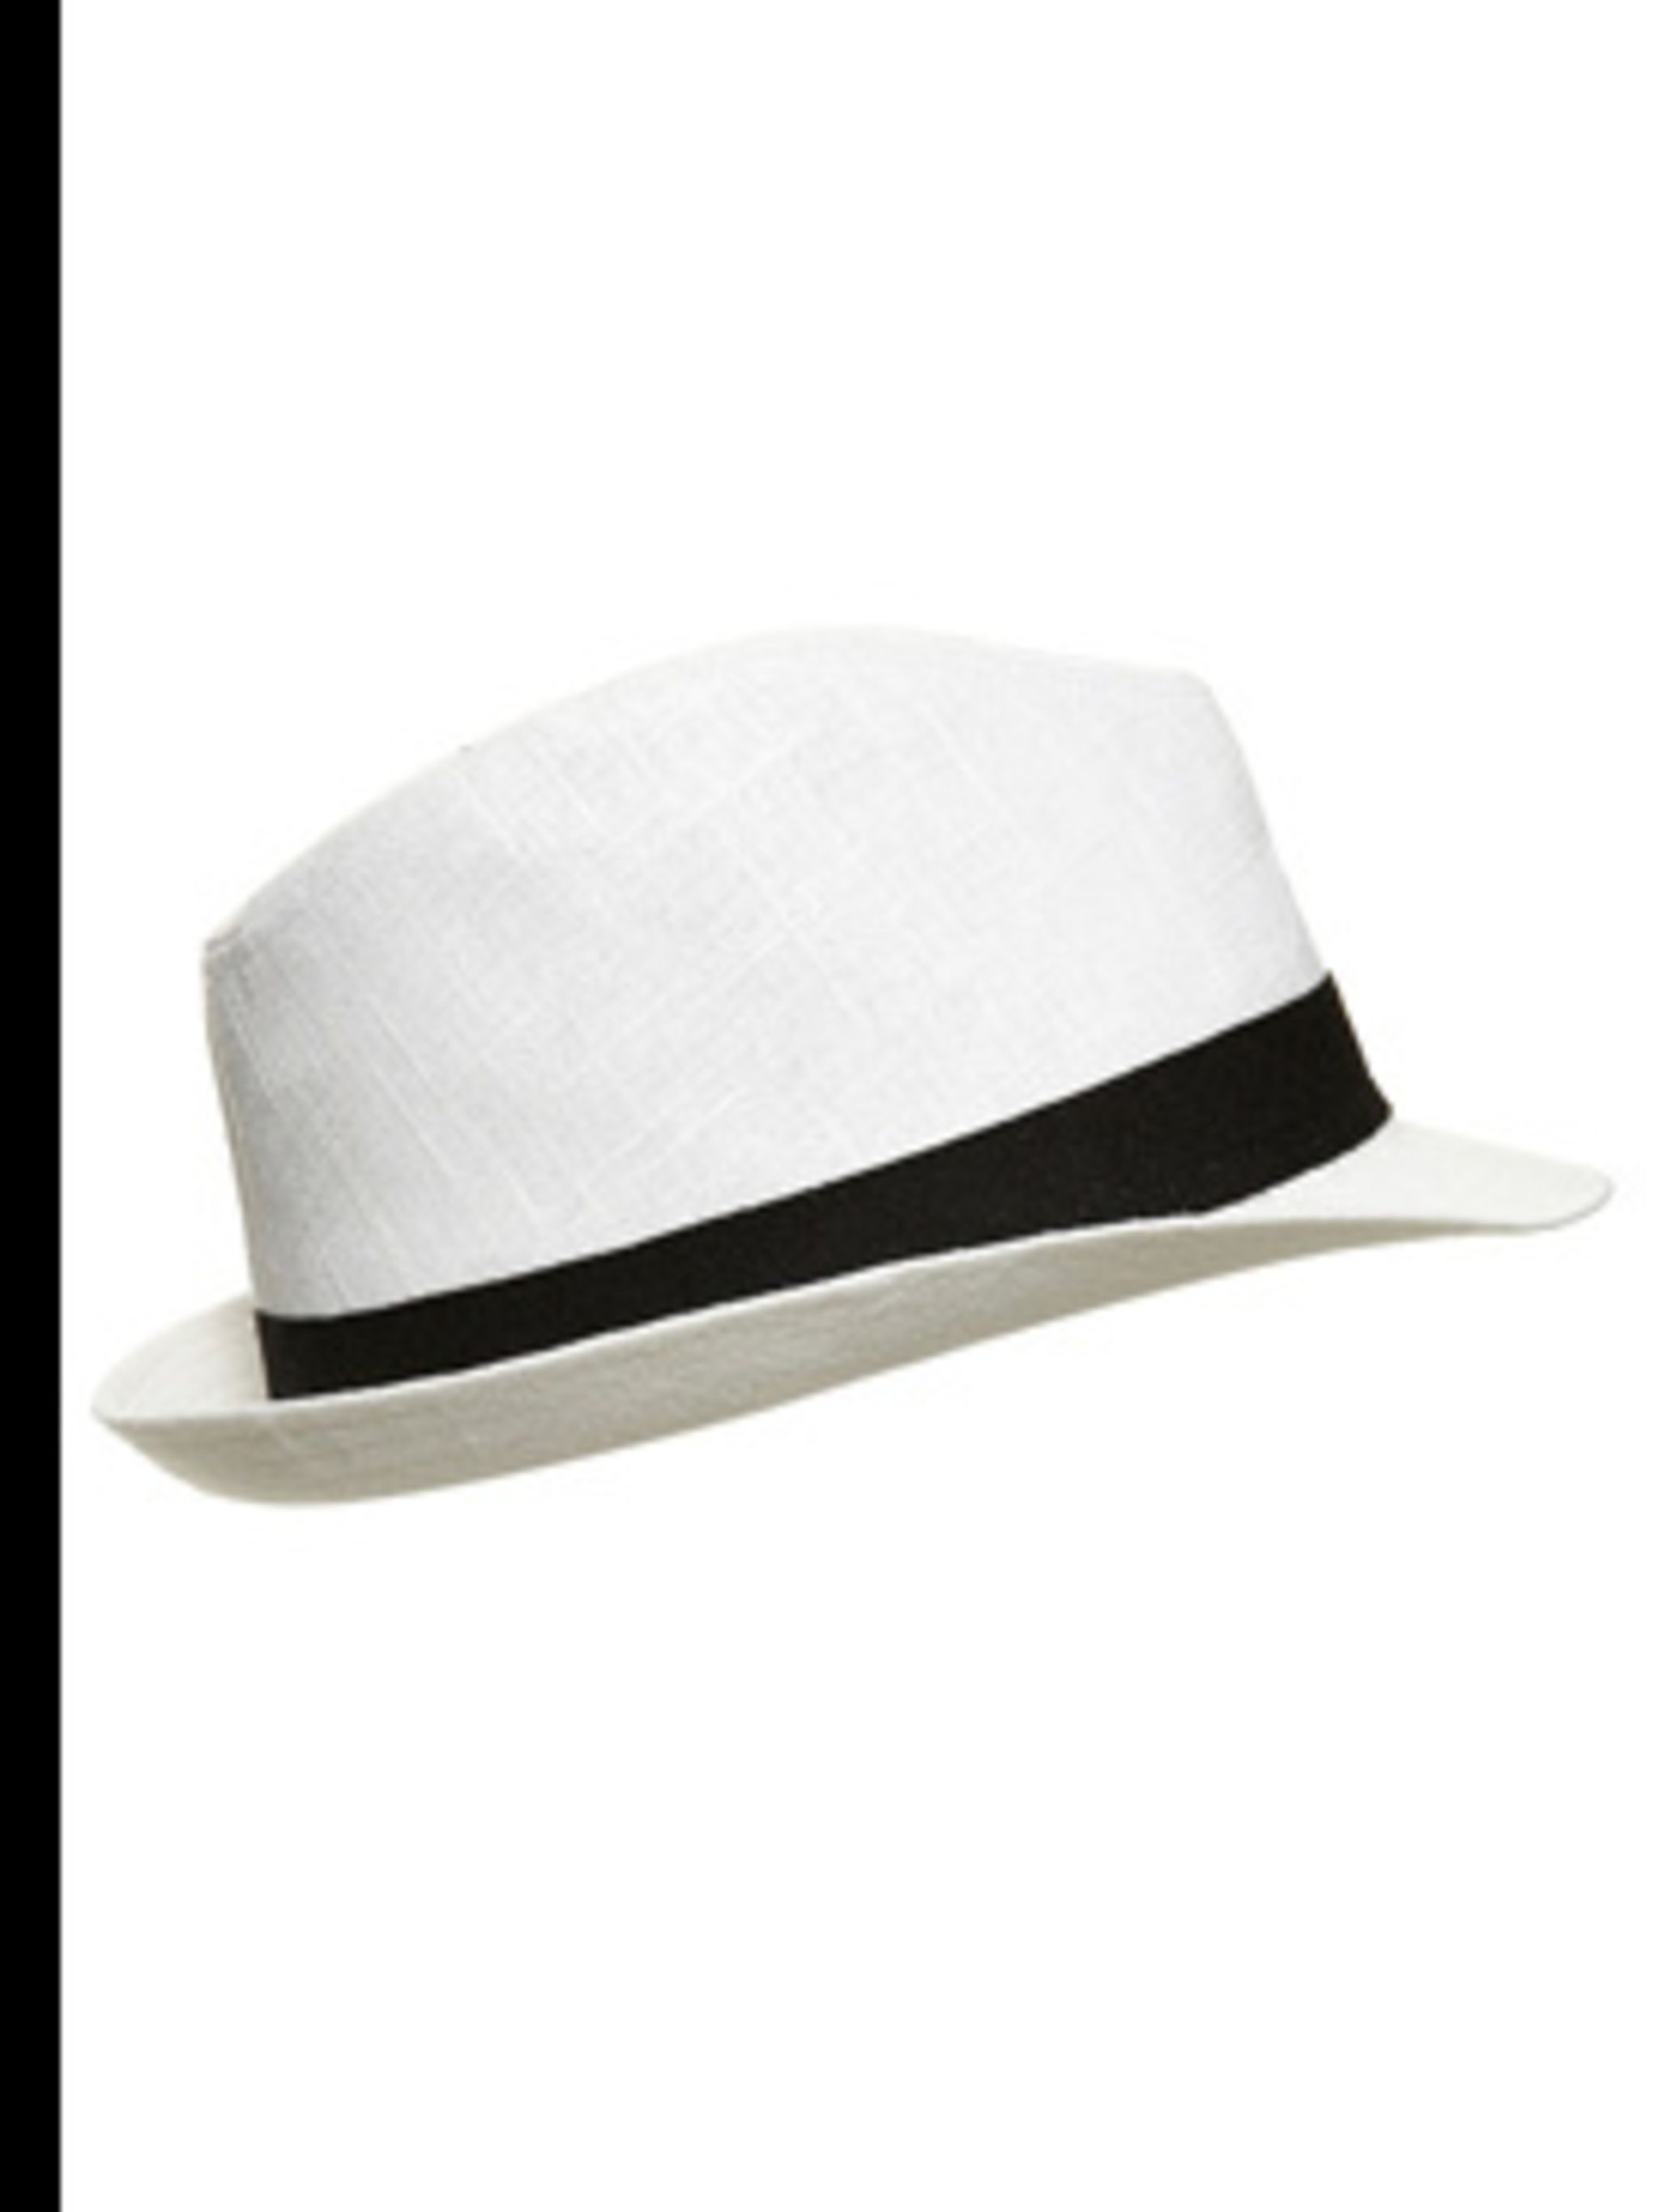 "<p>Linen trilby, £20, by <a href=""http://www.topshop.com/webapp/wcs/stores/servlet/ProductDisplay?beginIndex=0&amp&#x3B;viewAllFlag=&amp&#x3B;catalogId=19551&amp&#x3B;storeId=12556&amp&#x3B;categoryId=42356&amp&#x3B;parent_category_rn=42351&amp&#x3B;productId=1055269&amp&#x3B;langId=-1"">To"